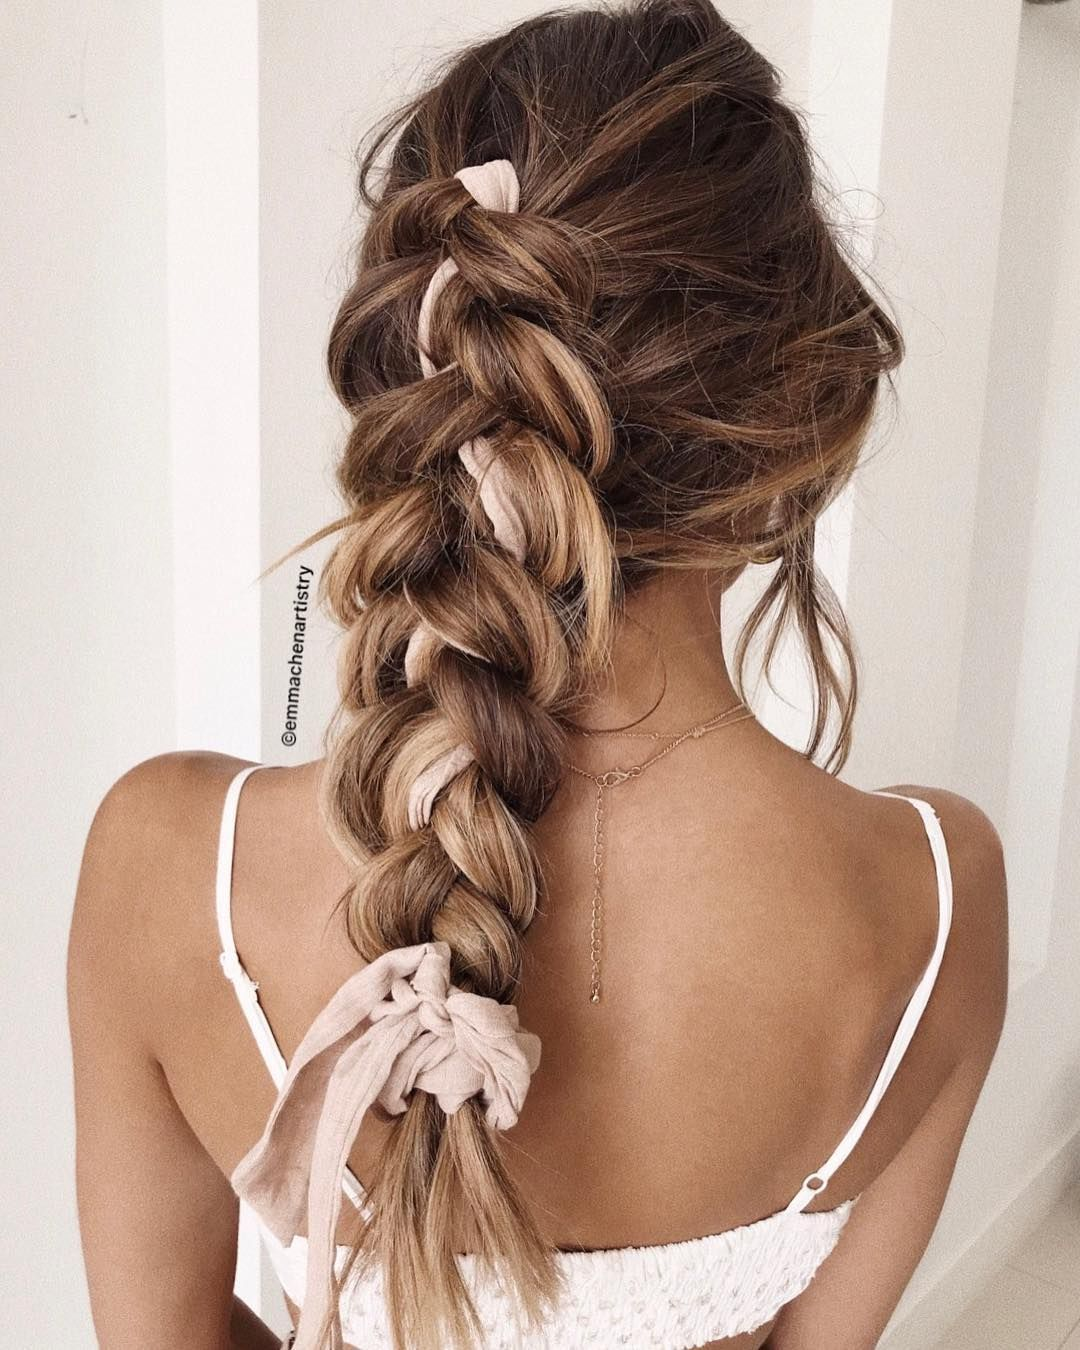 15 Quick And Easy Work Hairstyles That Take Under A Minute Easy Braids Hair Styles Braids For Long Hair